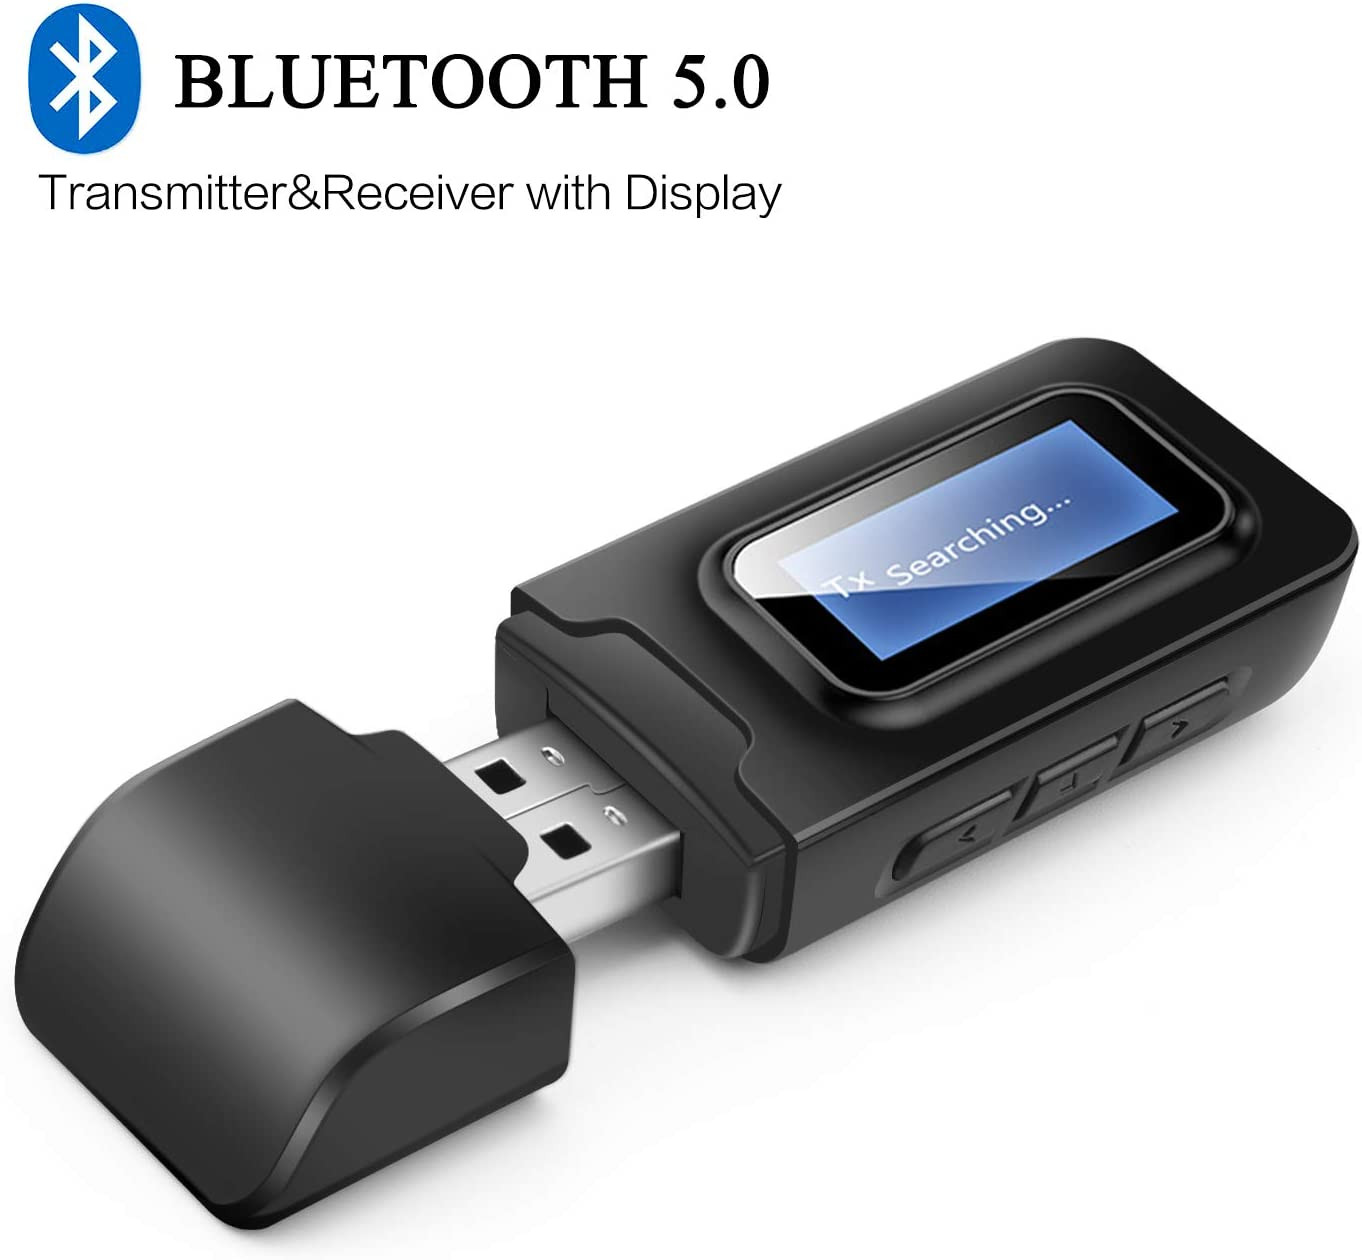 USB Bluetooth 5.0 Audio Transmitter Receiver with LCD Display,Goojodoq 3 in 1 Portable Visualization Bluetooth Adapter,3.5MM Wireless Bluetooth Adapter for PC,TV,Wired Speaker,Headphones and Car